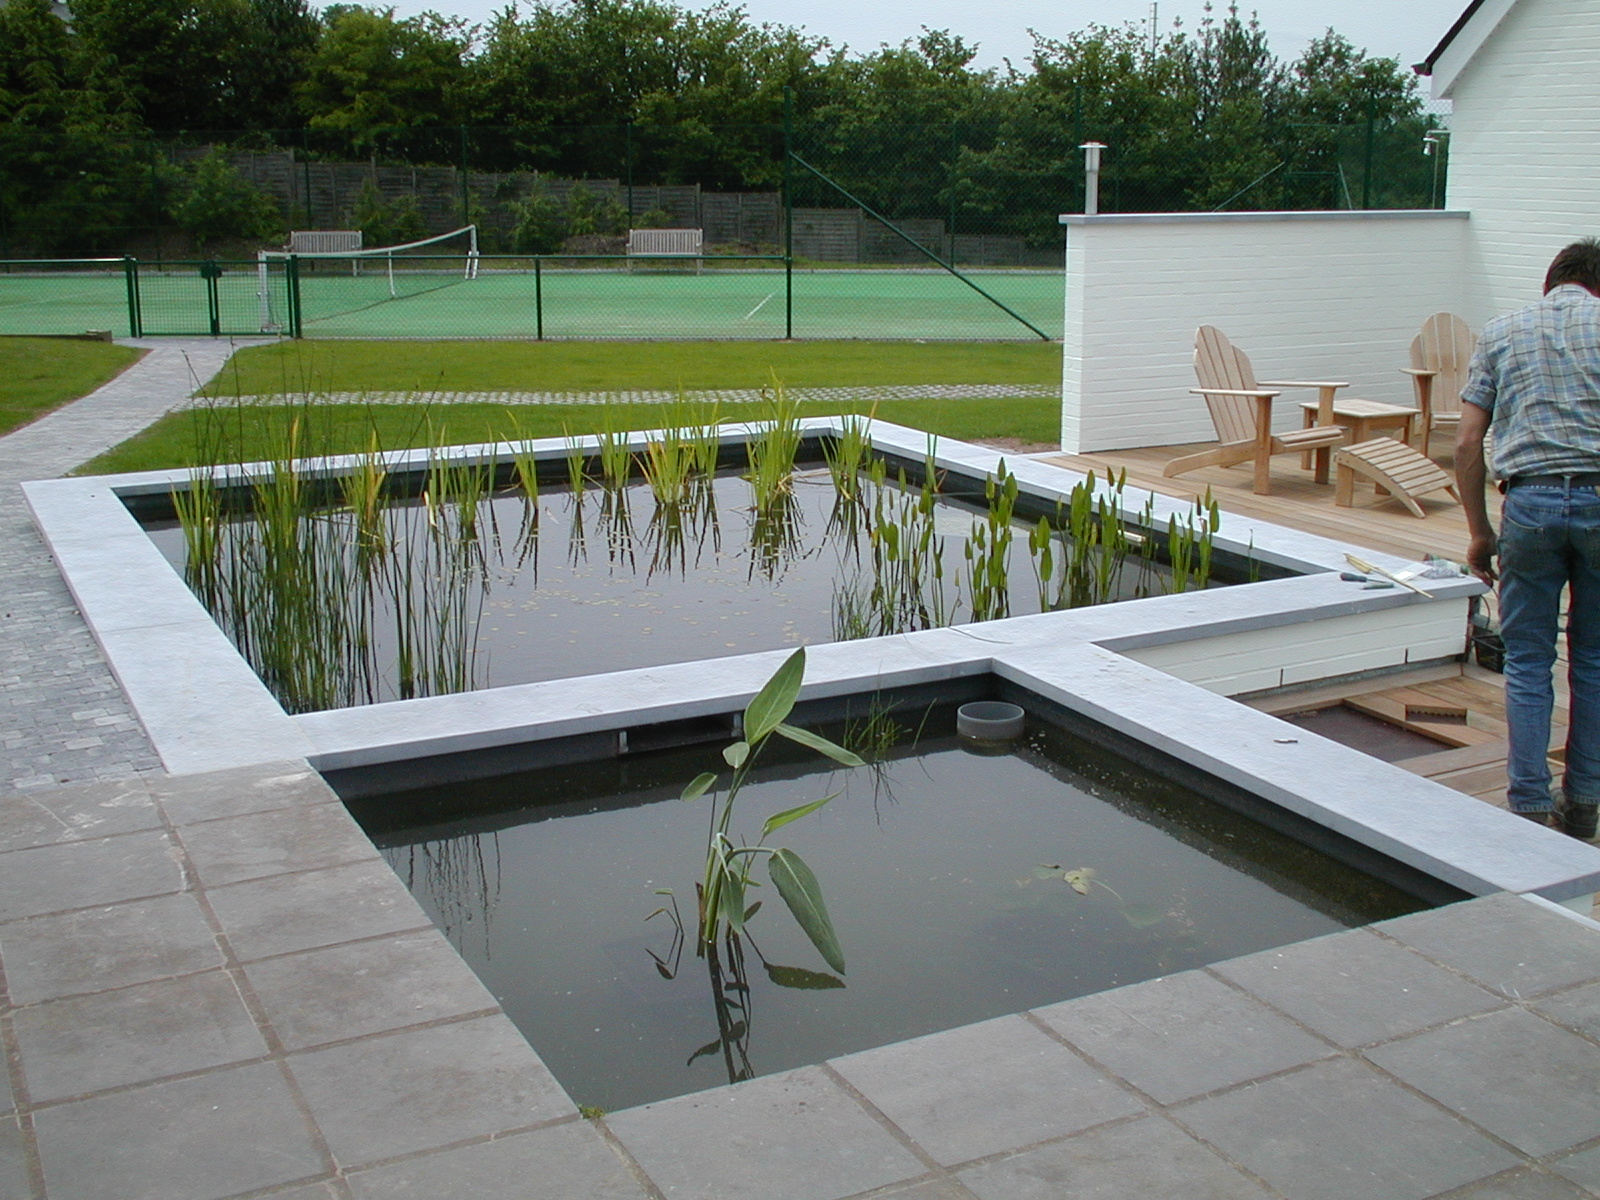 Piscine d eau naturelle aquatic design concept et garden for Piscine naturelle design